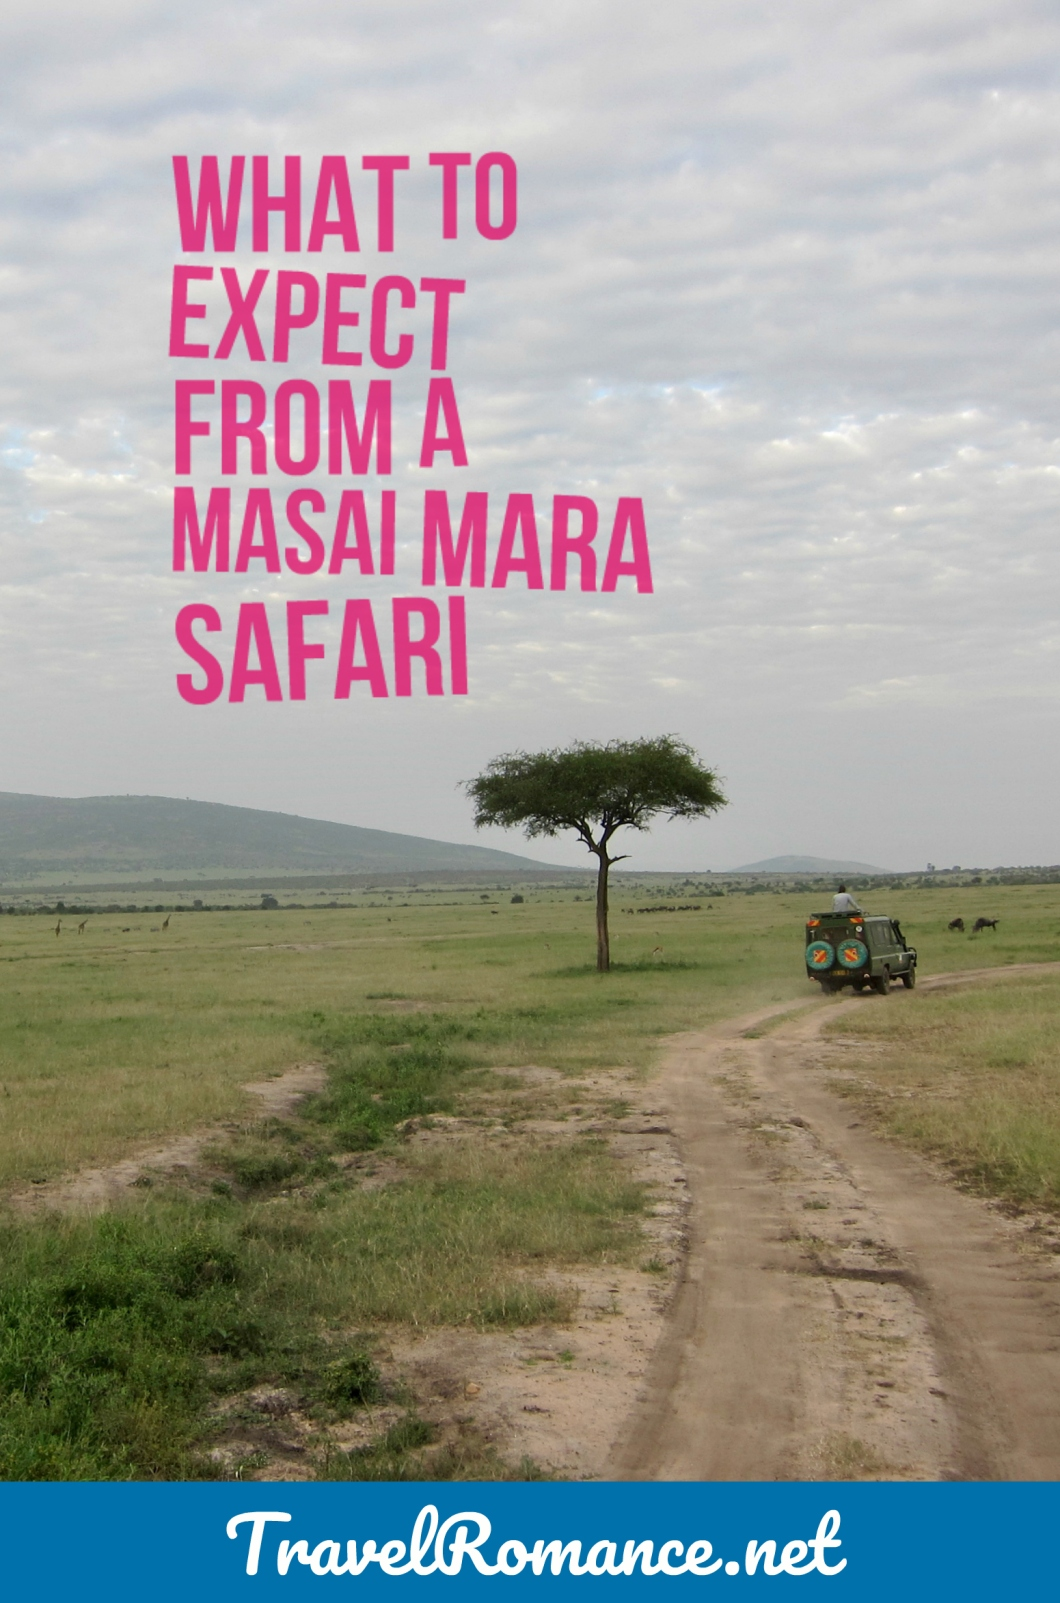 What to Expect from a Masai Mara Safari